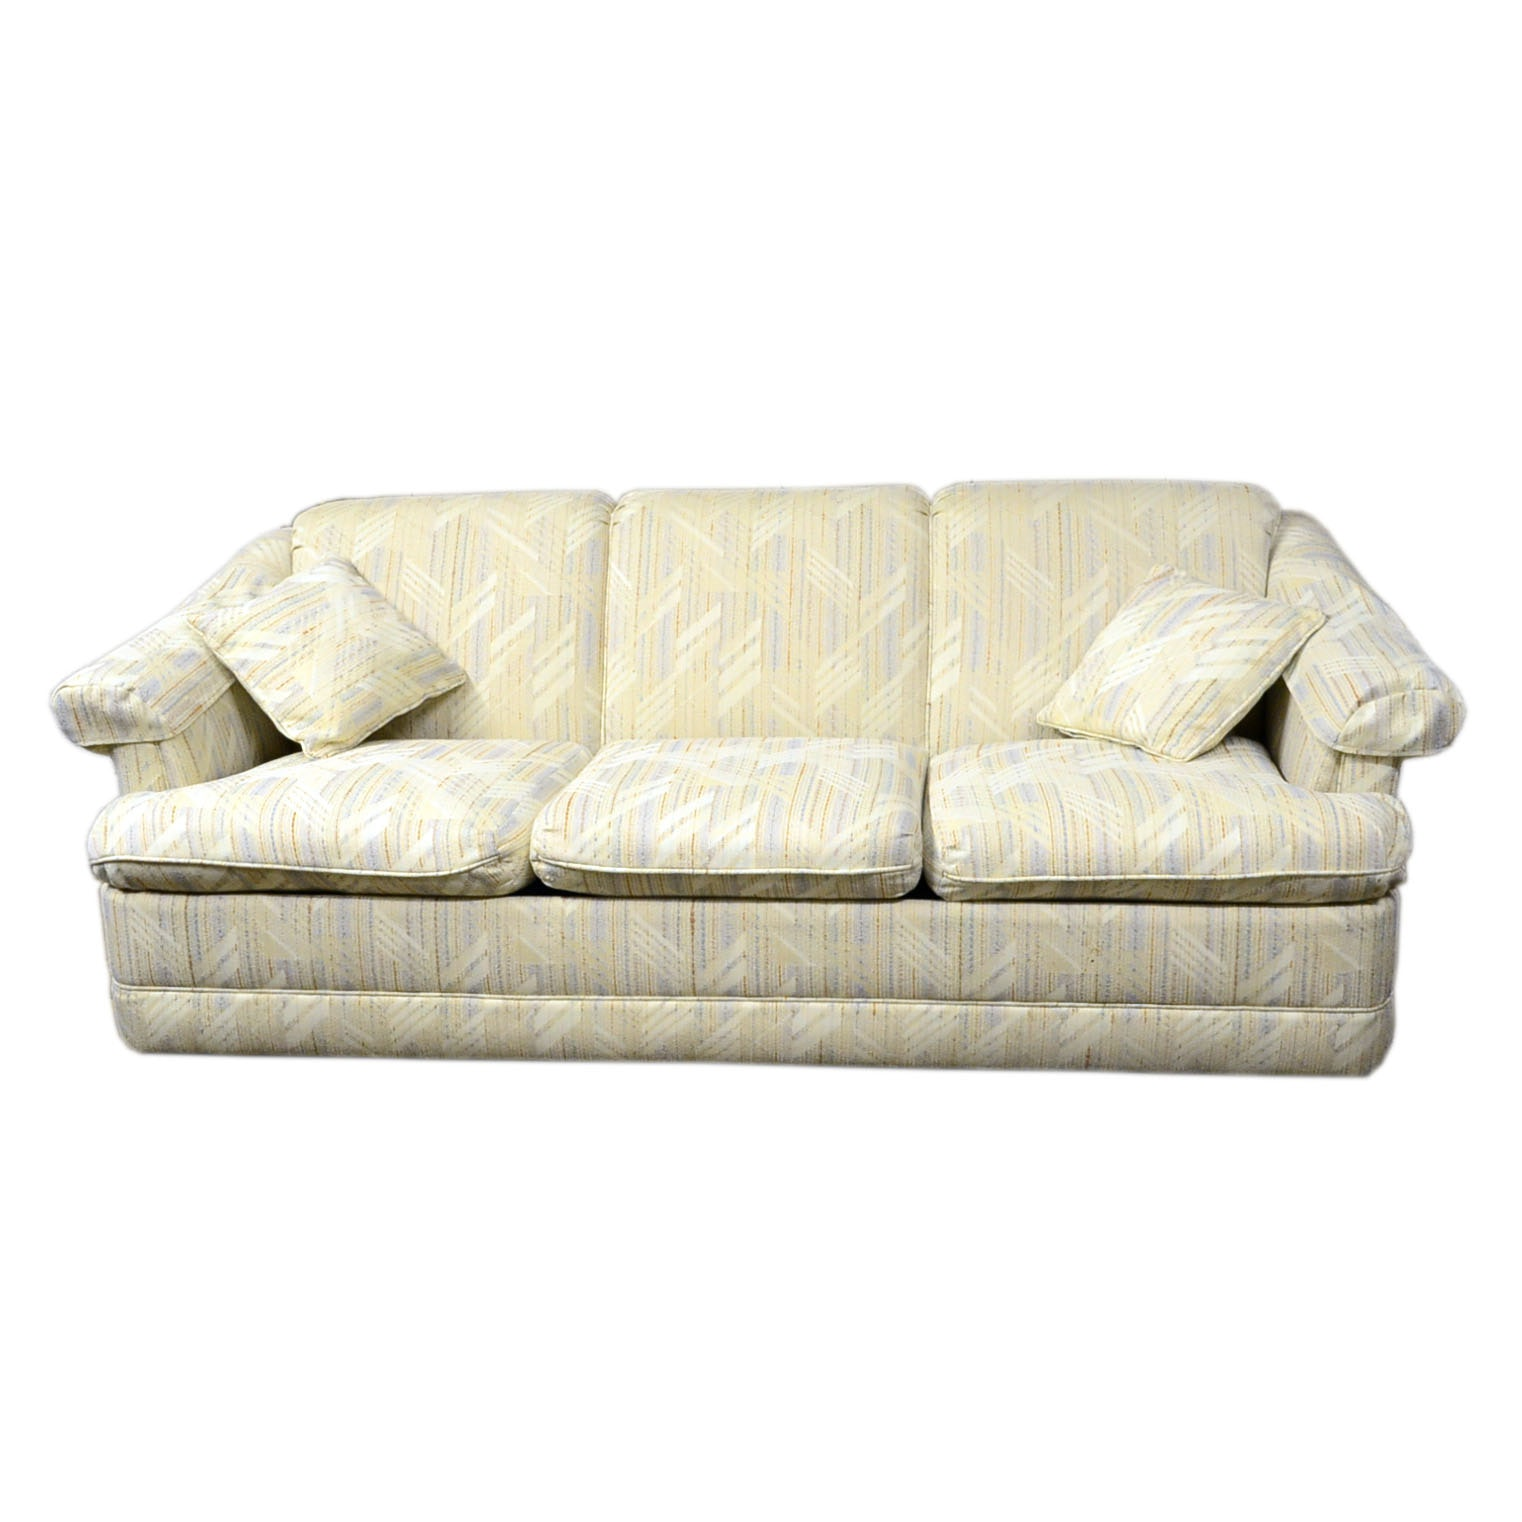 Vintage Sofas Antique Settees Retro Loveseats and Antique Chaises in Traditional Furnishings